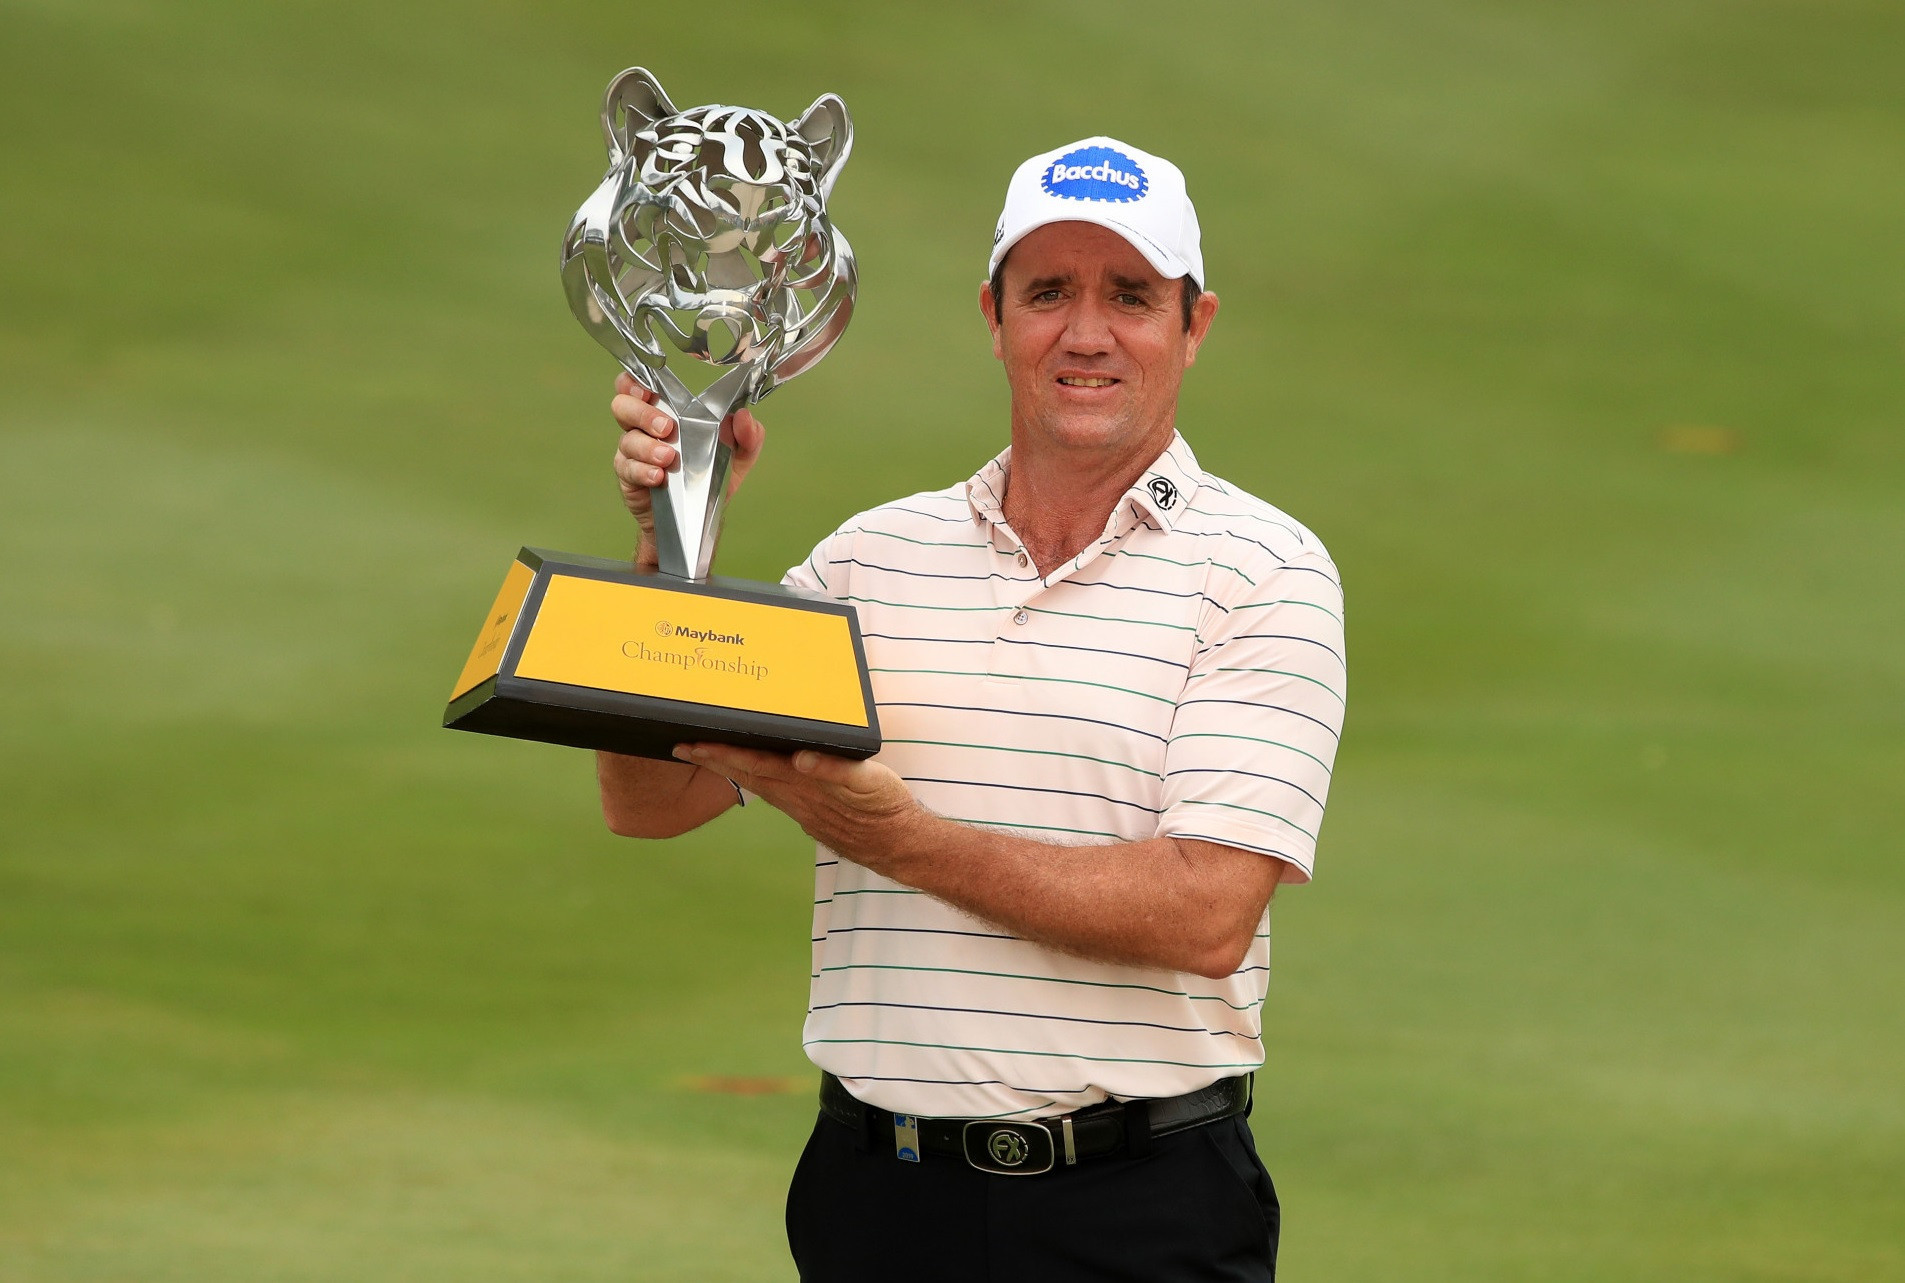 Scott Hend, pictured with the trophy, will not be able to defend the Maybank Championship this year as the event has been postponed due to the coronavirus outbreak ©Getty Images